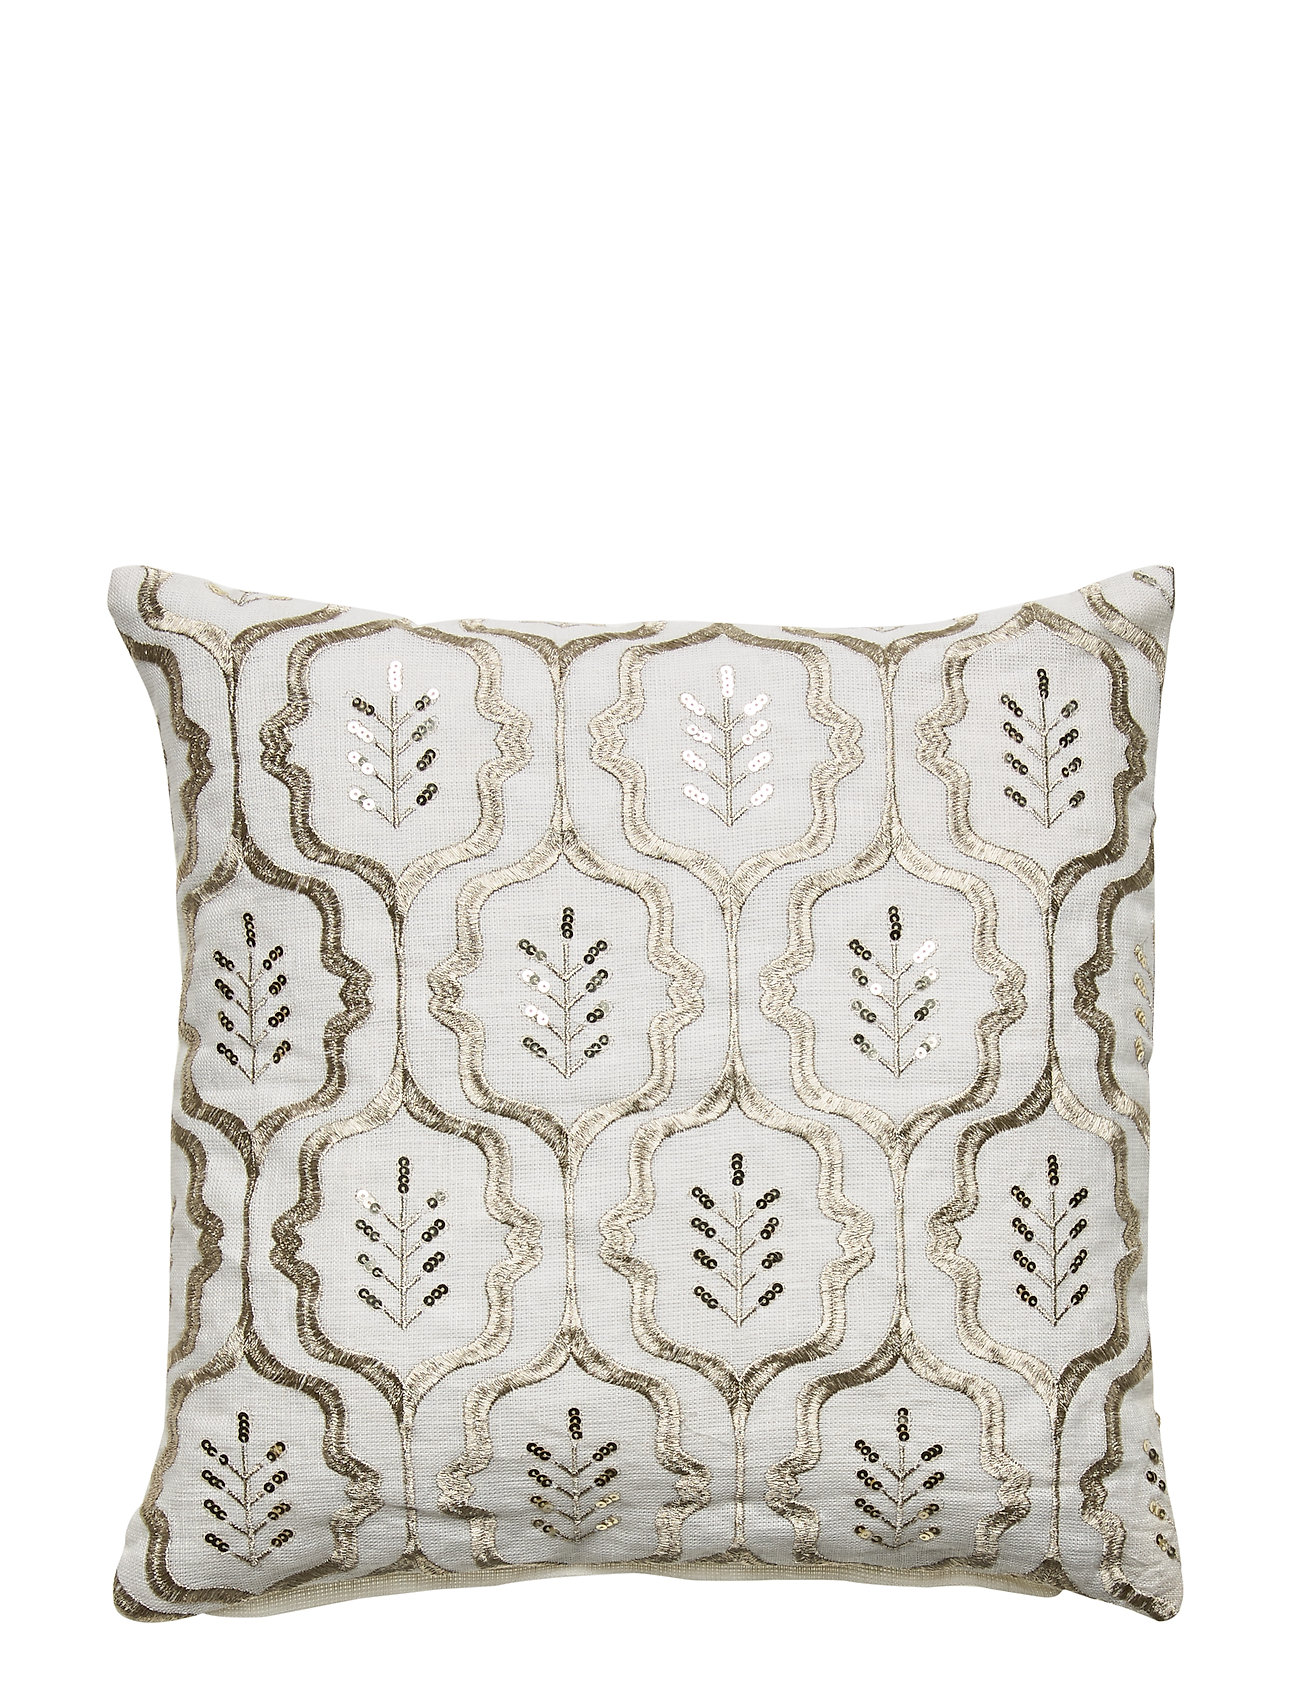 DAY Home Day Columbine Cushion Cover Natural White - NATURAL WHITE